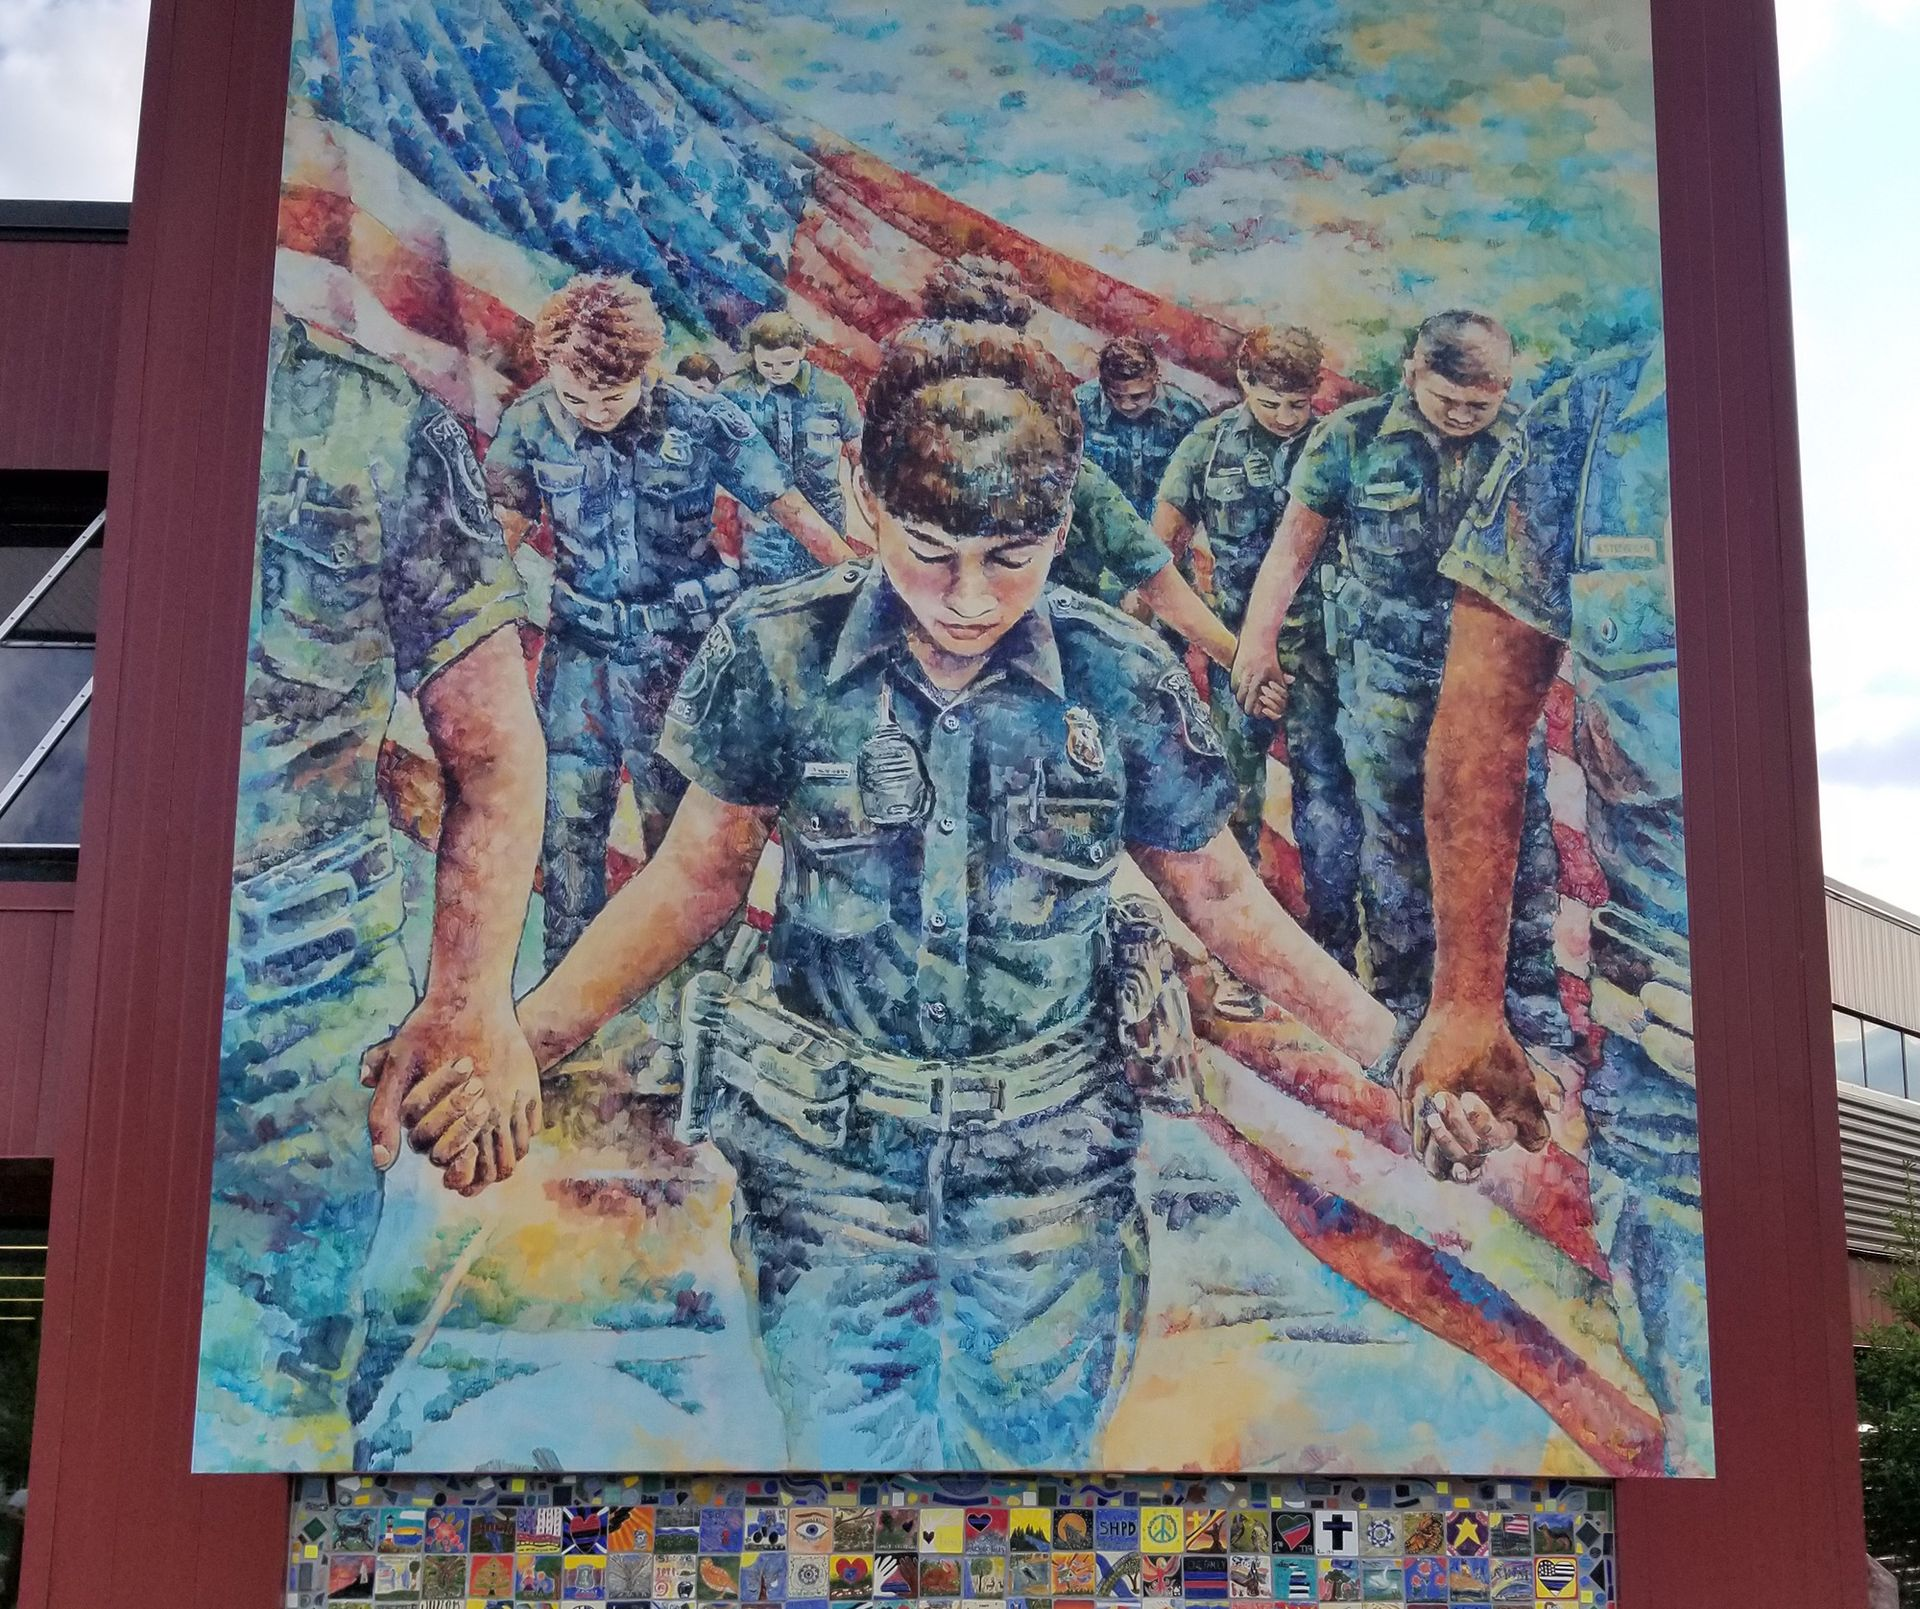 A mural honouring the police in Sterling Heights, Michigan is accompanied by rows of tiles created by officers and their families Courtesy of Sterling Heights City Hall